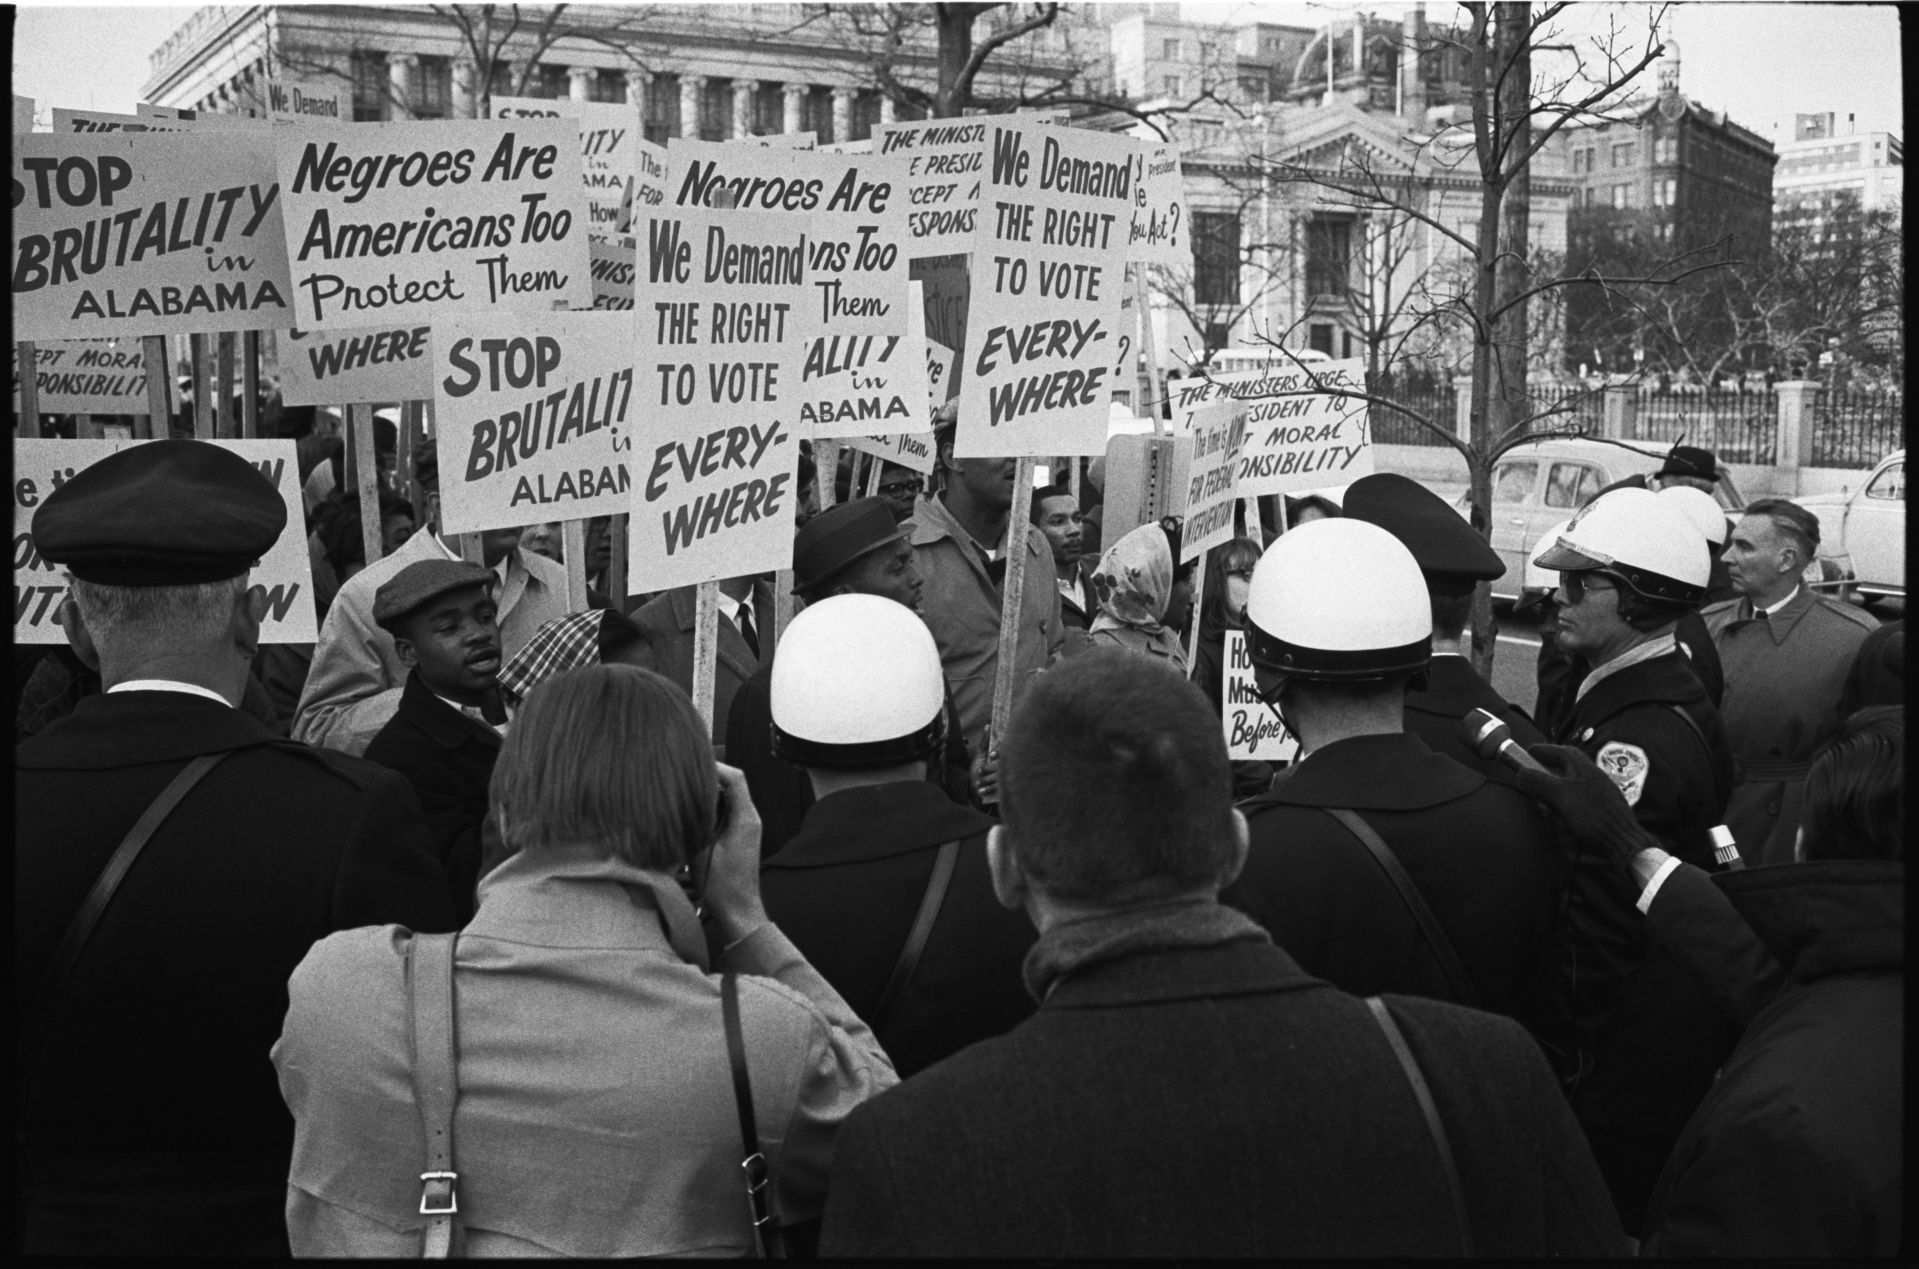 """[African American demonstrators outside the White House, with signs """"We demand the right to vote, everywhere"""" and signs protesting police brutality against civil rights demonstrators in Selma, Alabama] / WKL.  Leffler, Warren K, photographer. African American demonstrators outside the White House, with signs """"We demand the right to vote, everywhere"""" and signs protesting police brutality against civil rights demonstrators in Selma, Alabama / WKL. Alabama Selma Washington Washington D.C, 1965. Photograph. https://www.loc.gov/item/2014645538/."""